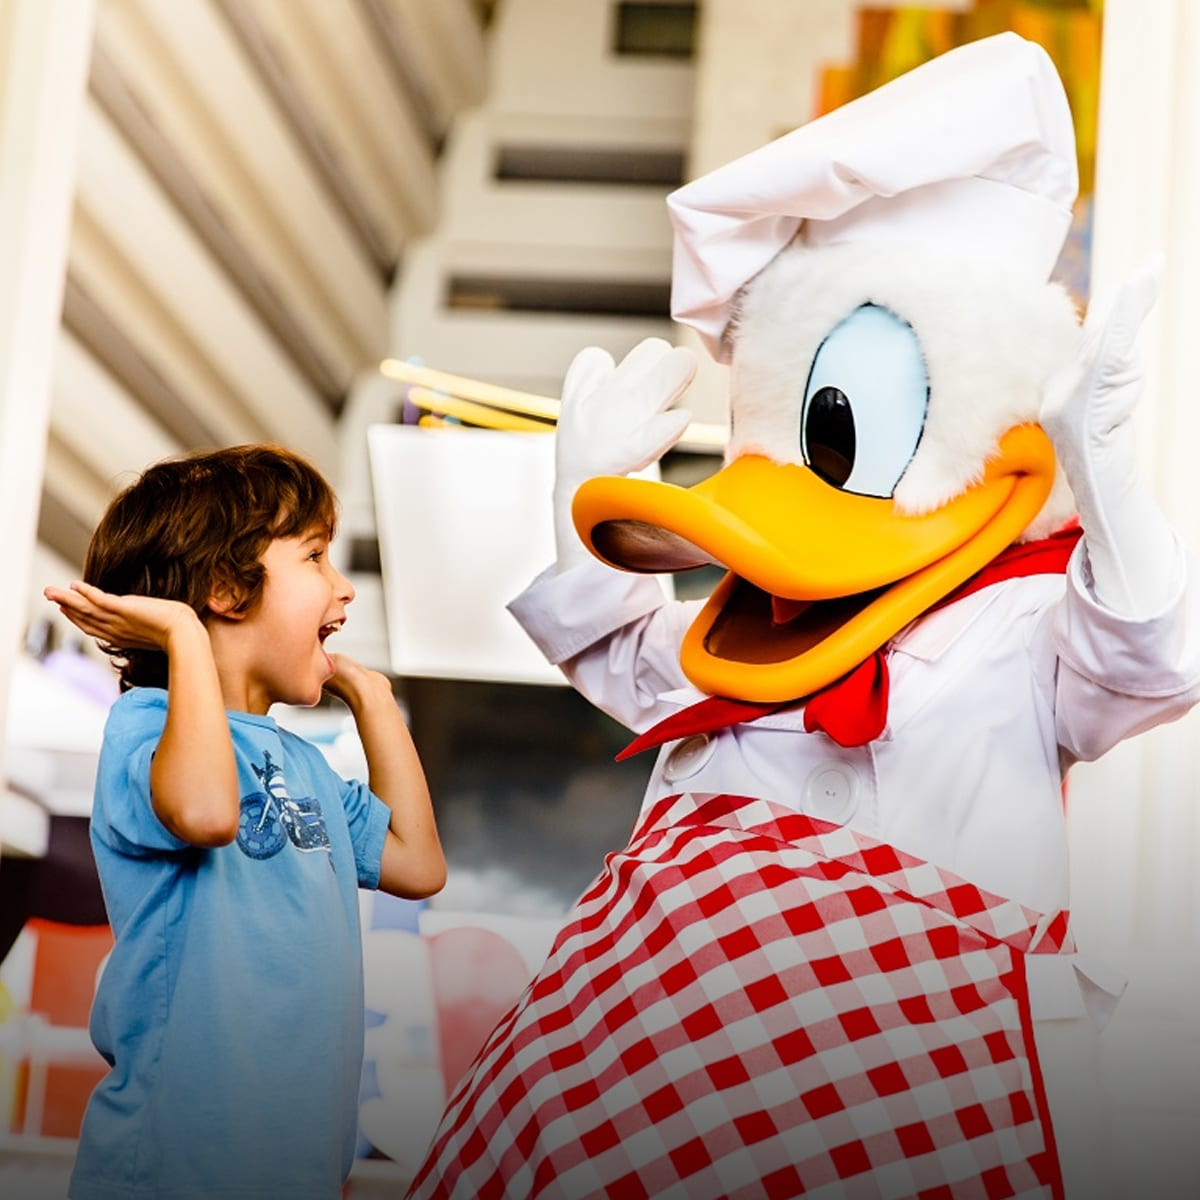 Child stood next to Donald Duck dressed as a Chef